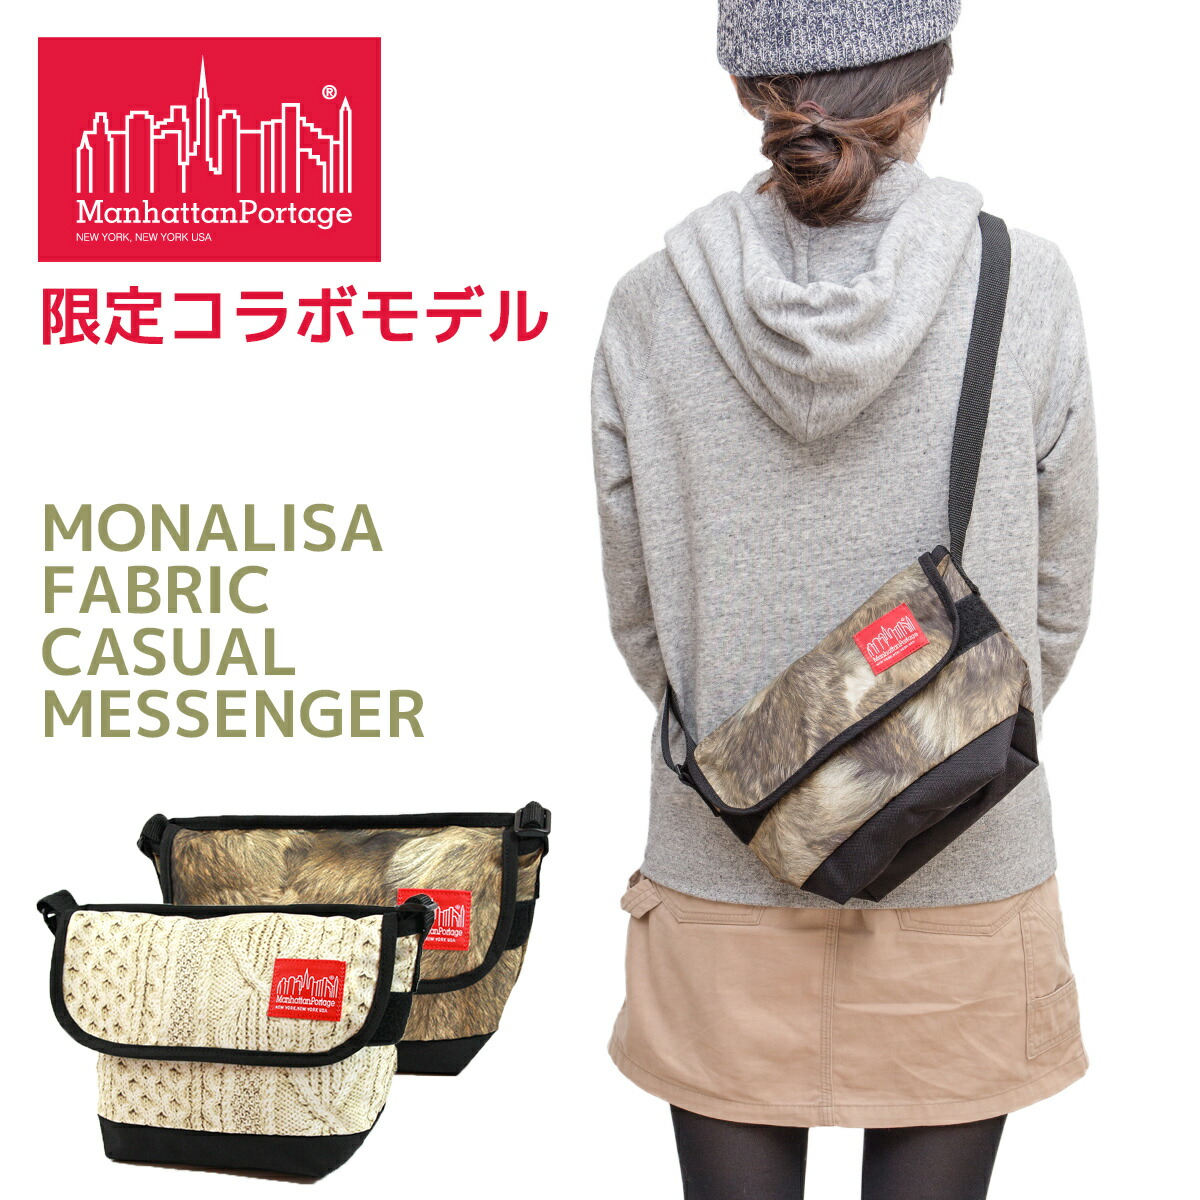 Manhattan Portage(�ޥ�ϥå���ݡ��ơ���)/��å��󥸥㡼�Хå�/MONALISA Fabric Casual Messenger Bag/MP1603MNL/�ᥤ��